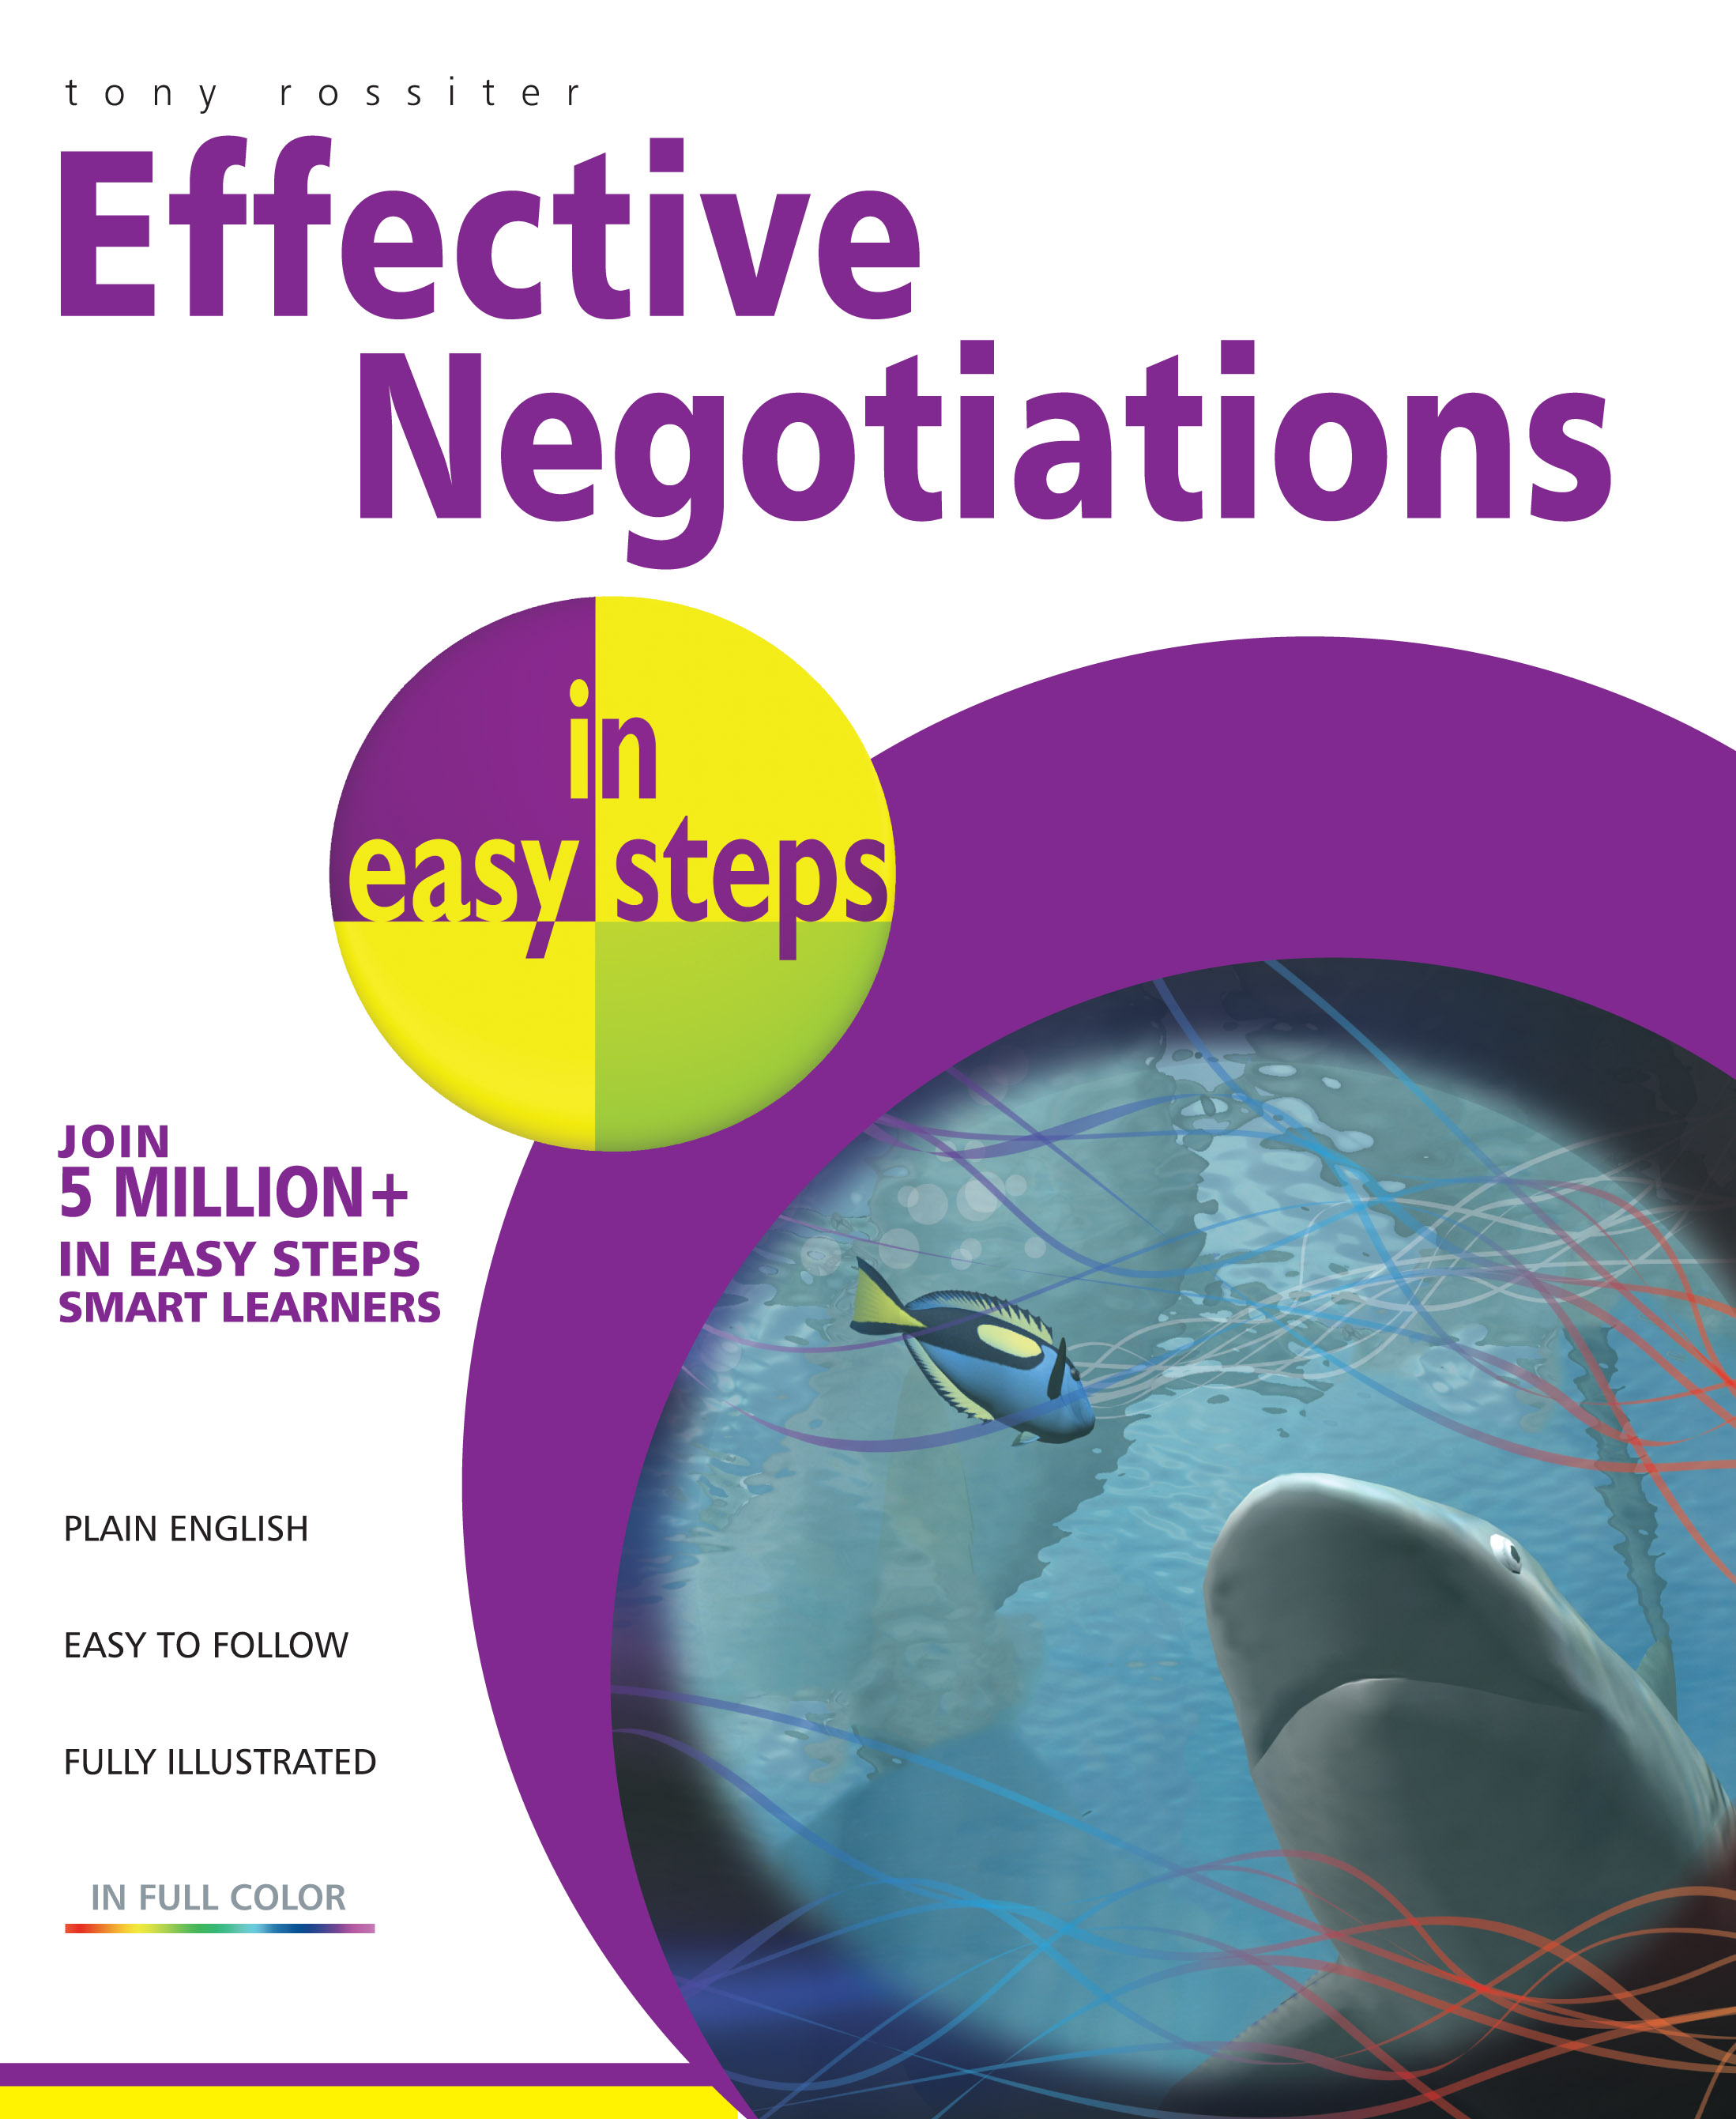 Effective Negotiations in easy steps PDF